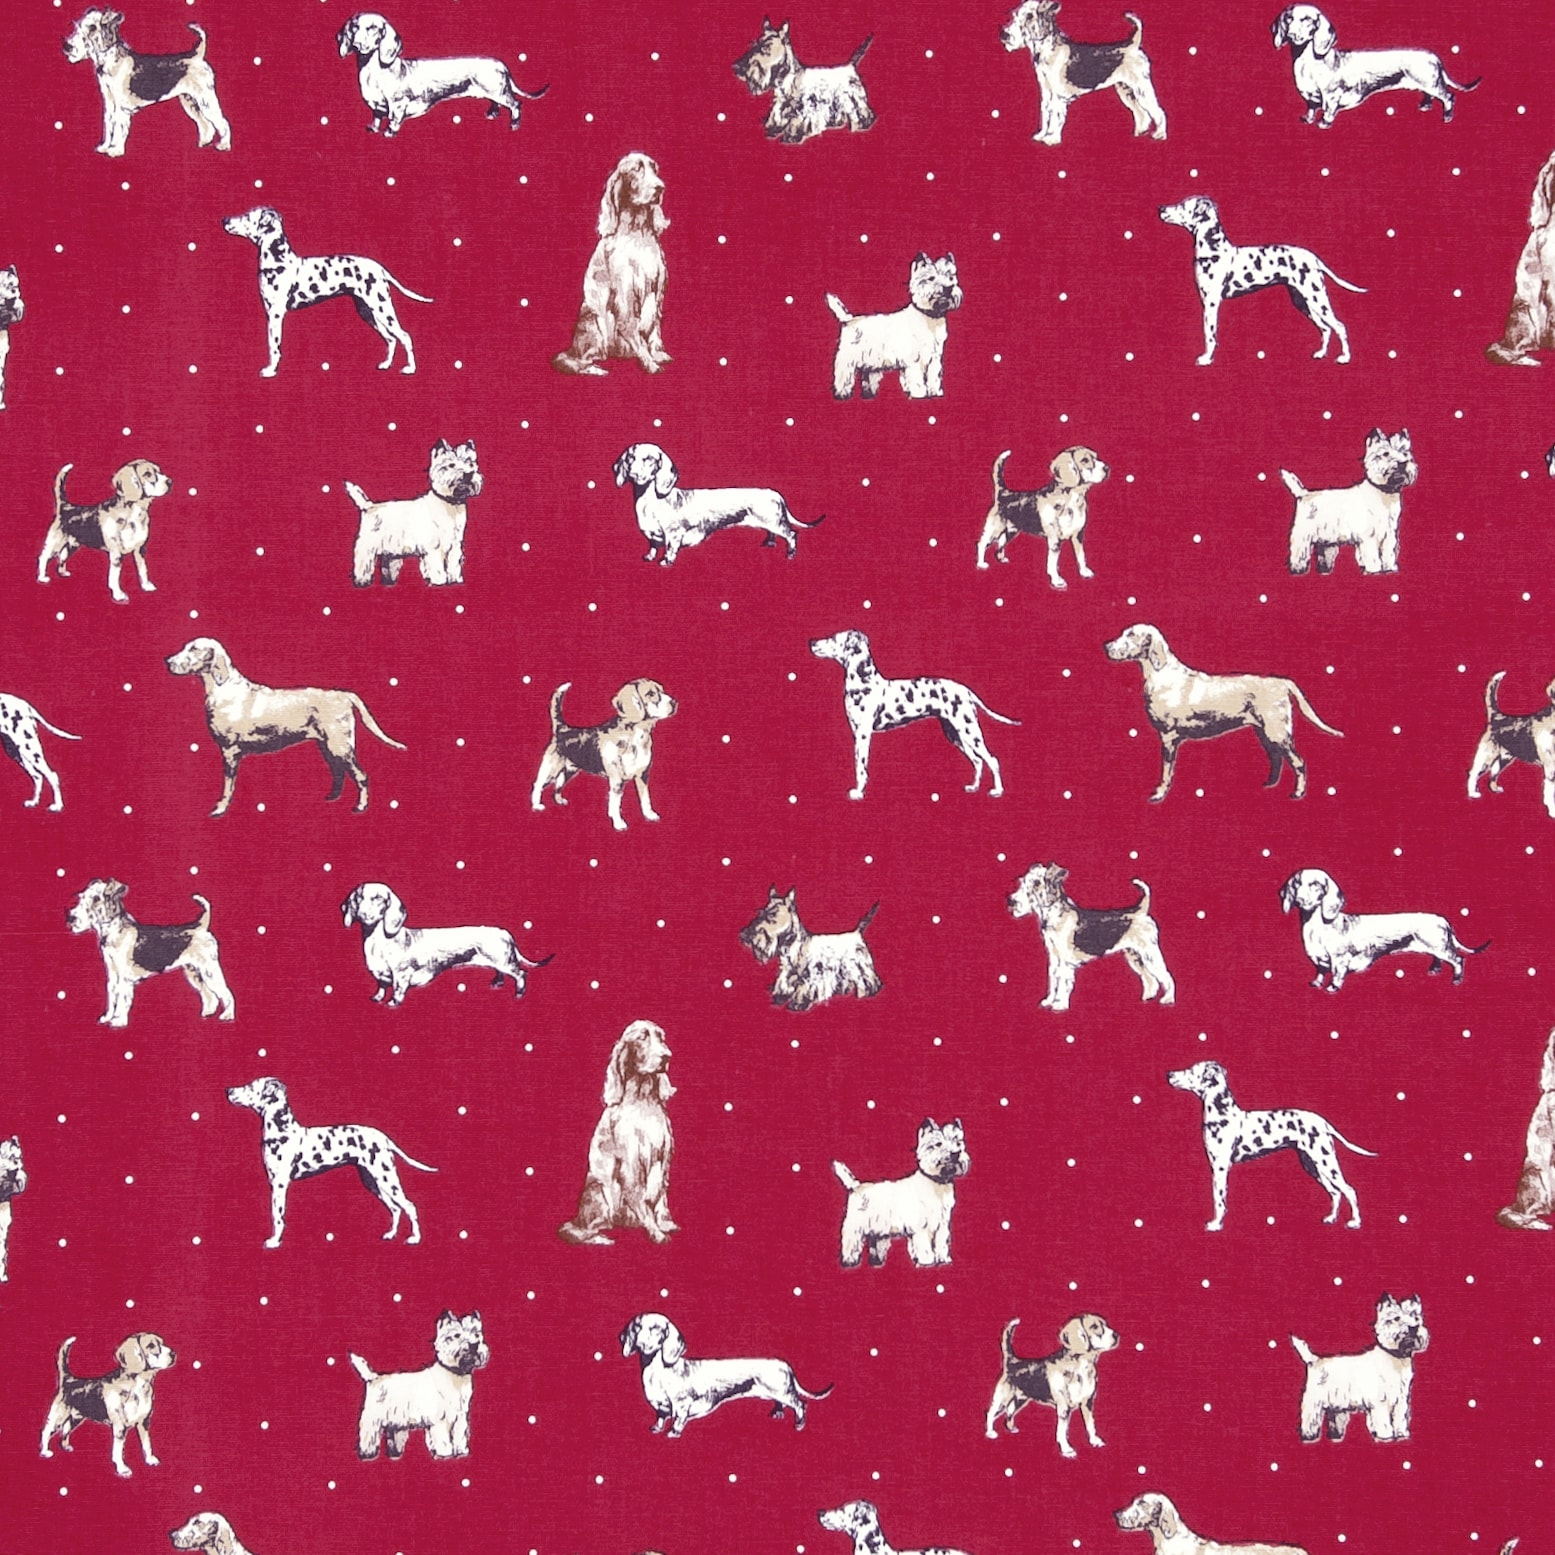 fabric sample - burgundy background with cream coloured dogs of all types